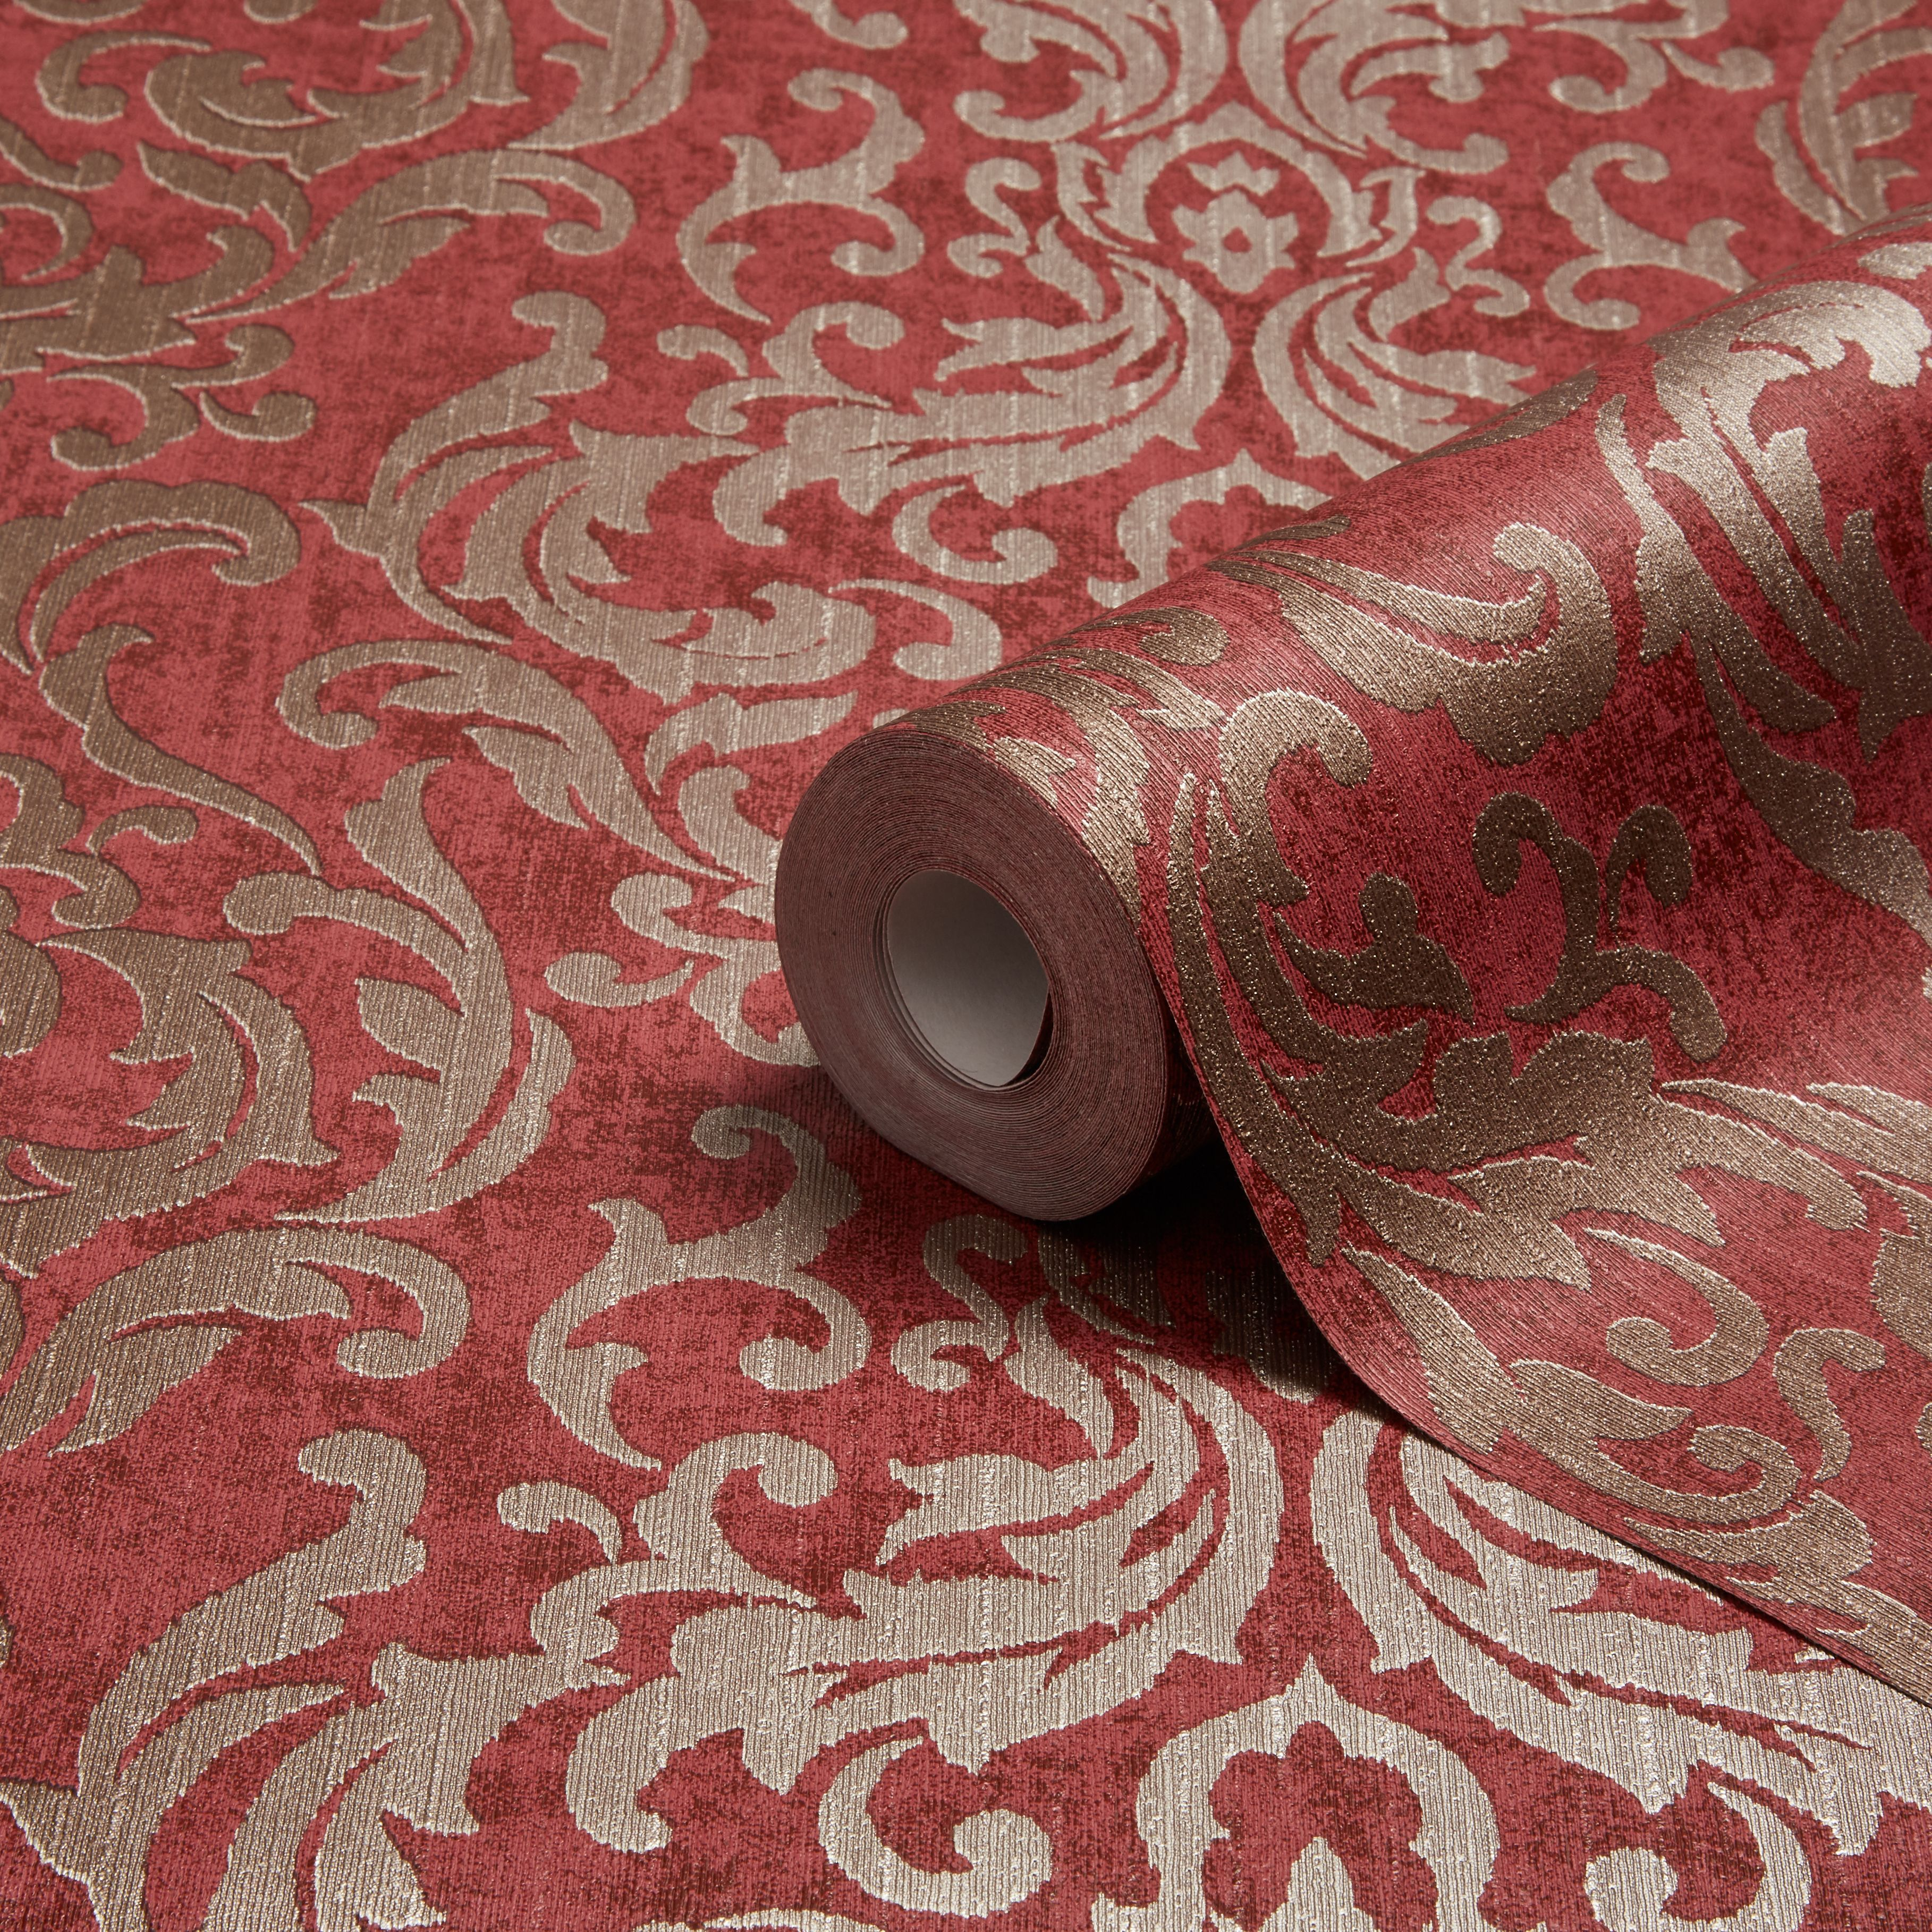 kitchen wallpaper ideas repair moen faucet graham & brown drama red damask | departments ...